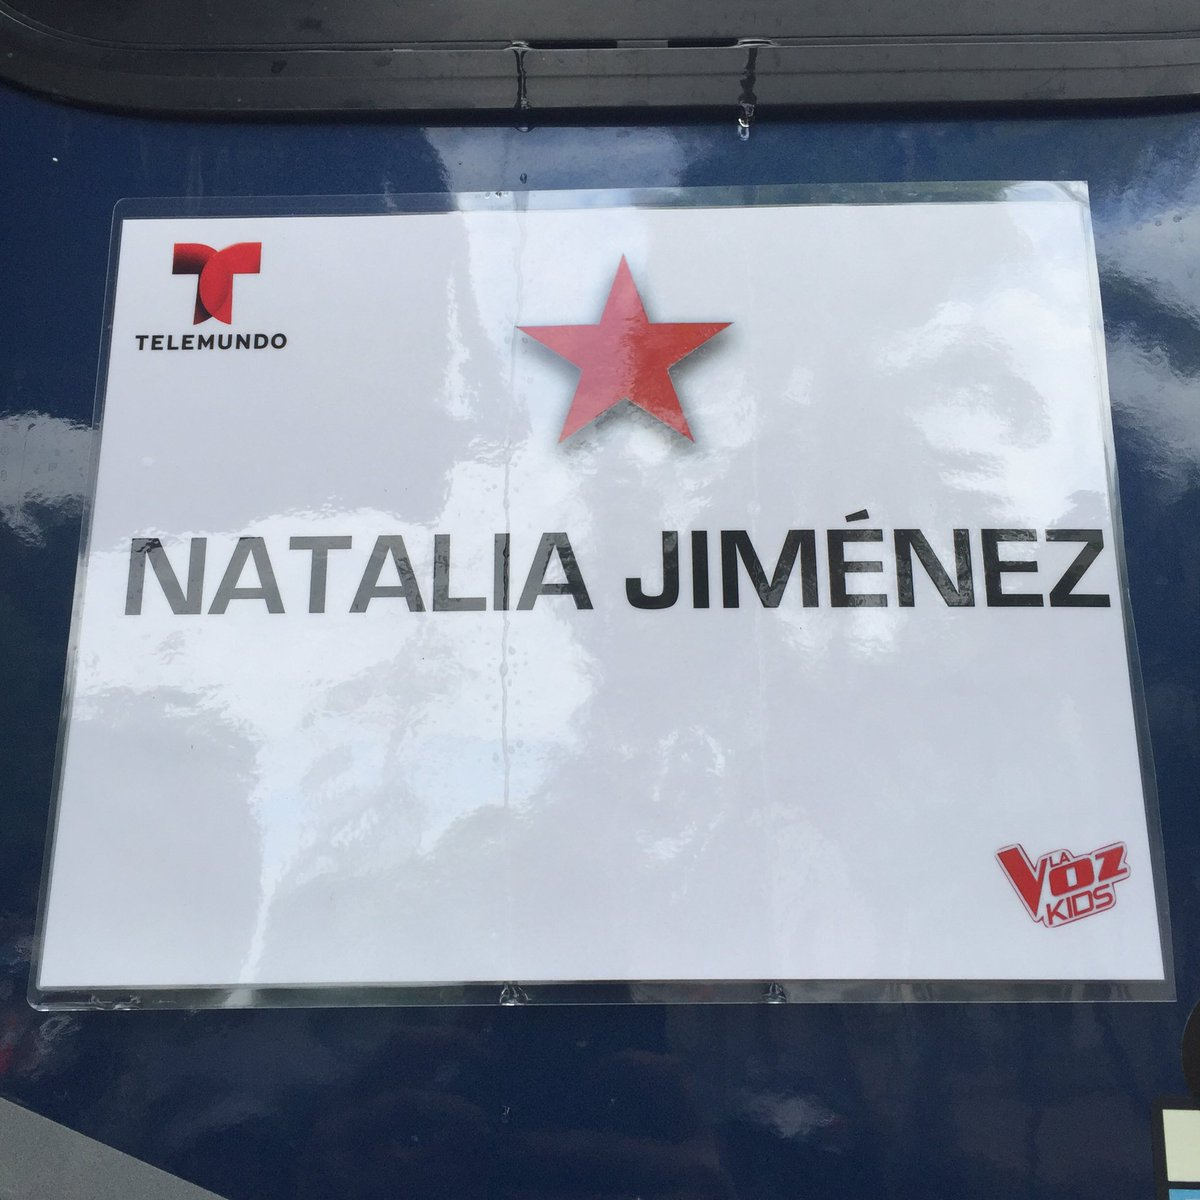 Oh yes... We are back! @NataliaJimenez #LVK ✌